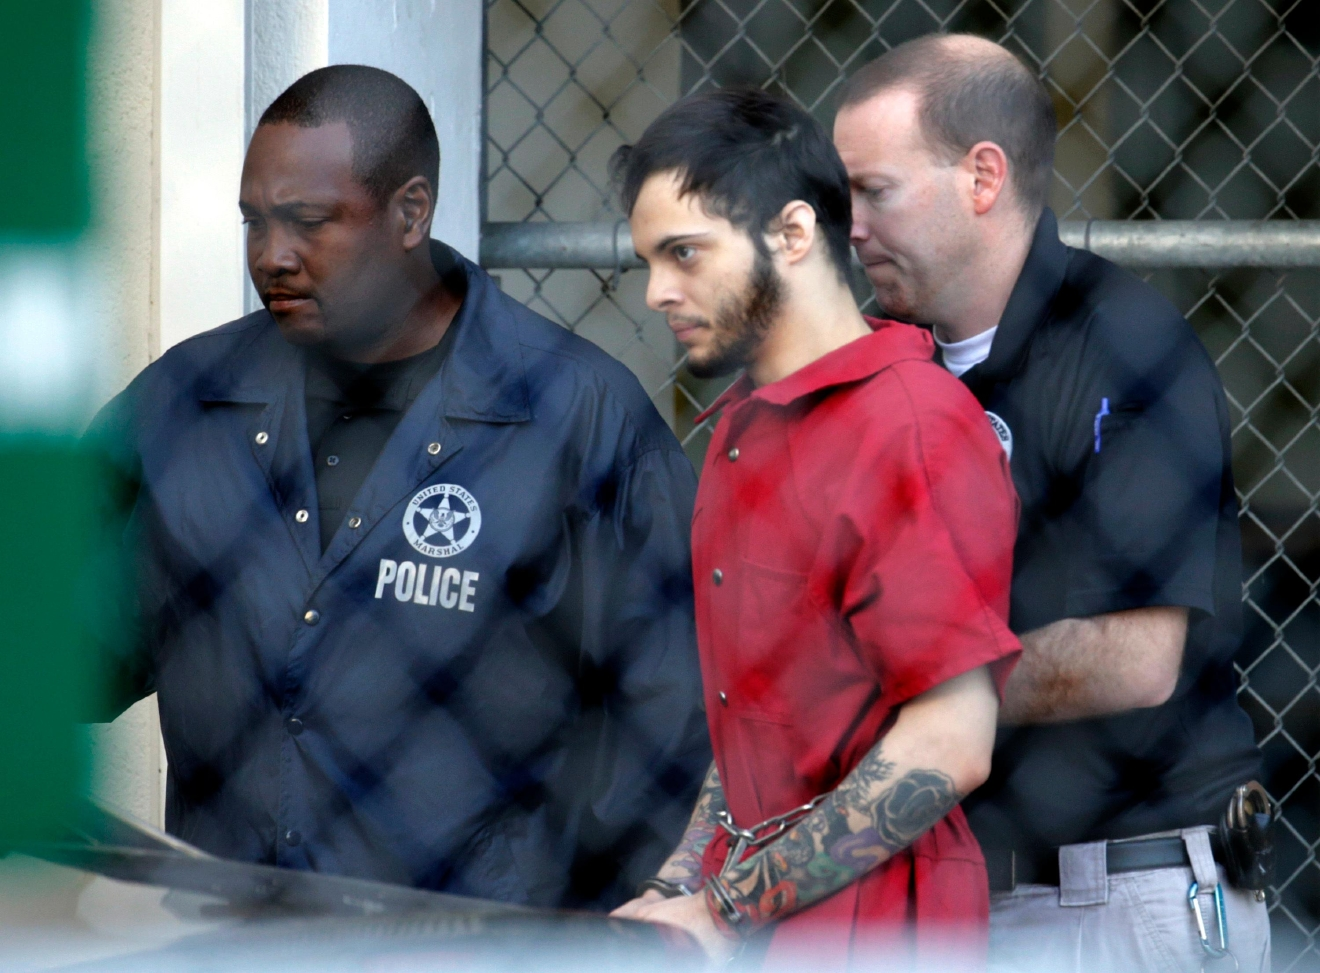 Esteban Santiago, center, leaves the Broward County jail for a hearing in federal court, Tuesday, Jan. 17, 2017, in Fort Lauderdale, Fla. Santiago is accused of a Jan. 6 shooting rampage at a Fort Lauderdale-Hollywood International Airport baggage claim area that left several people dead and others wounded. (AP Photo/Lynne Sladky)